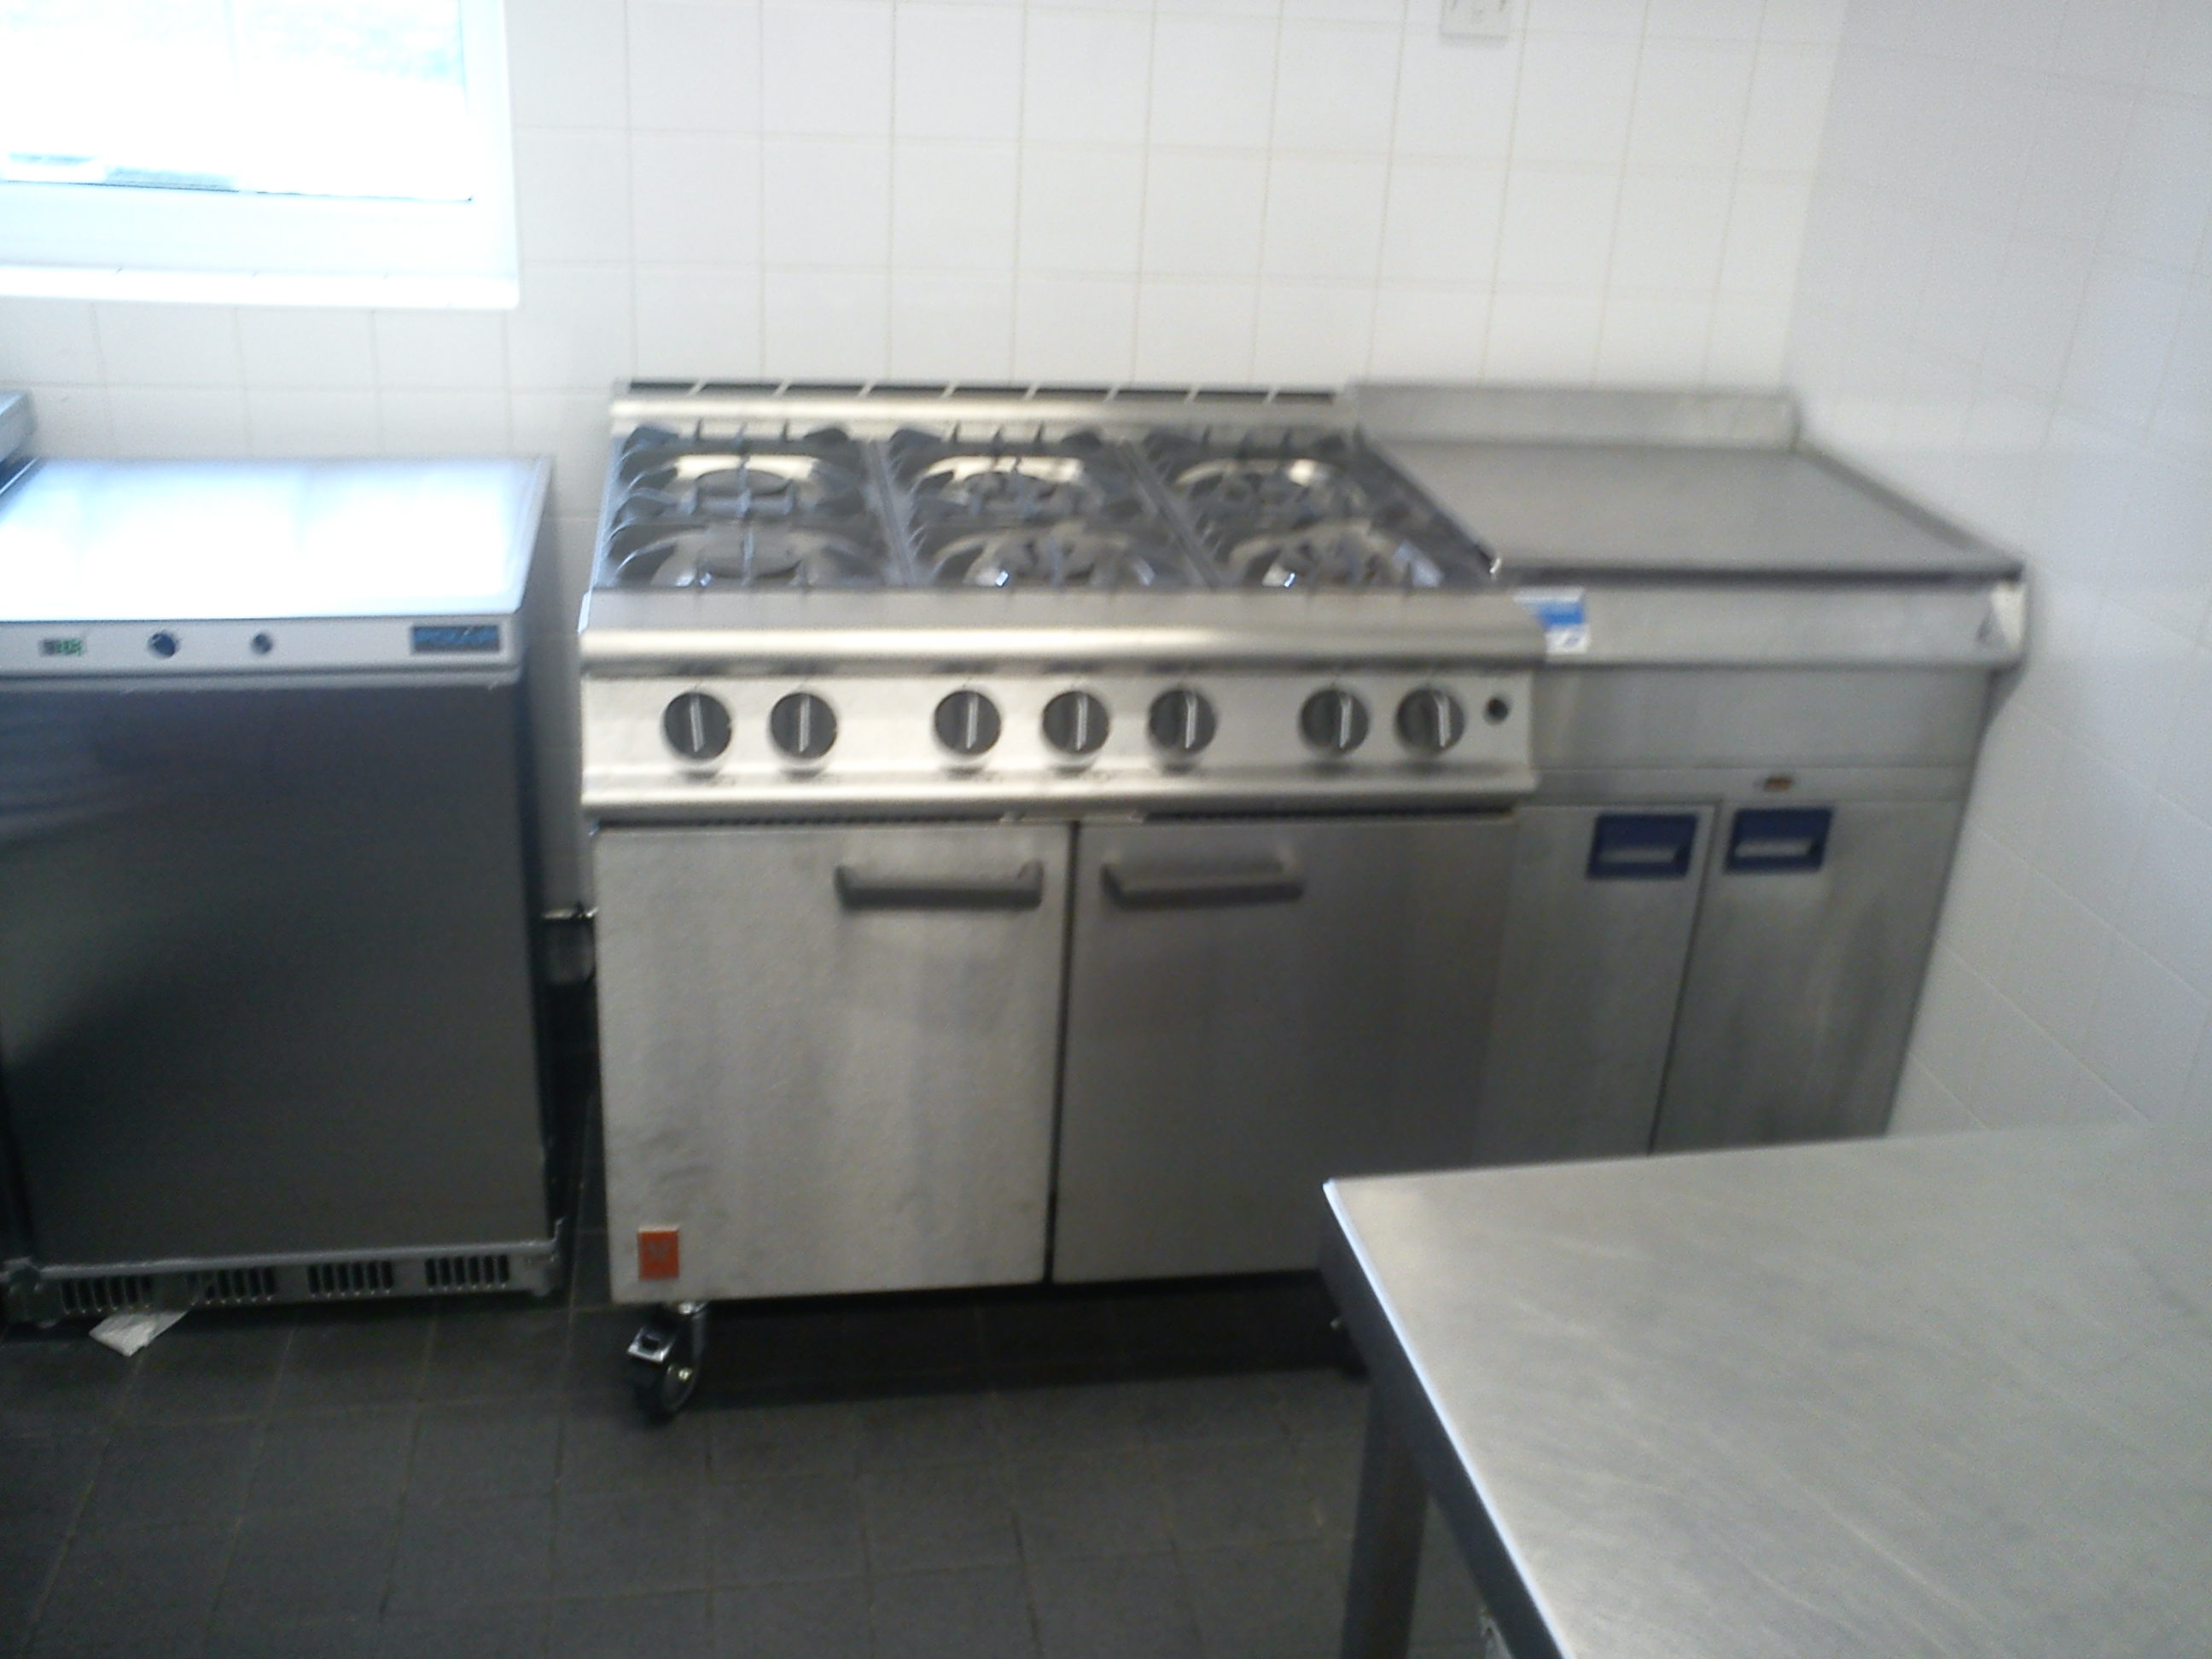 View of the cooker